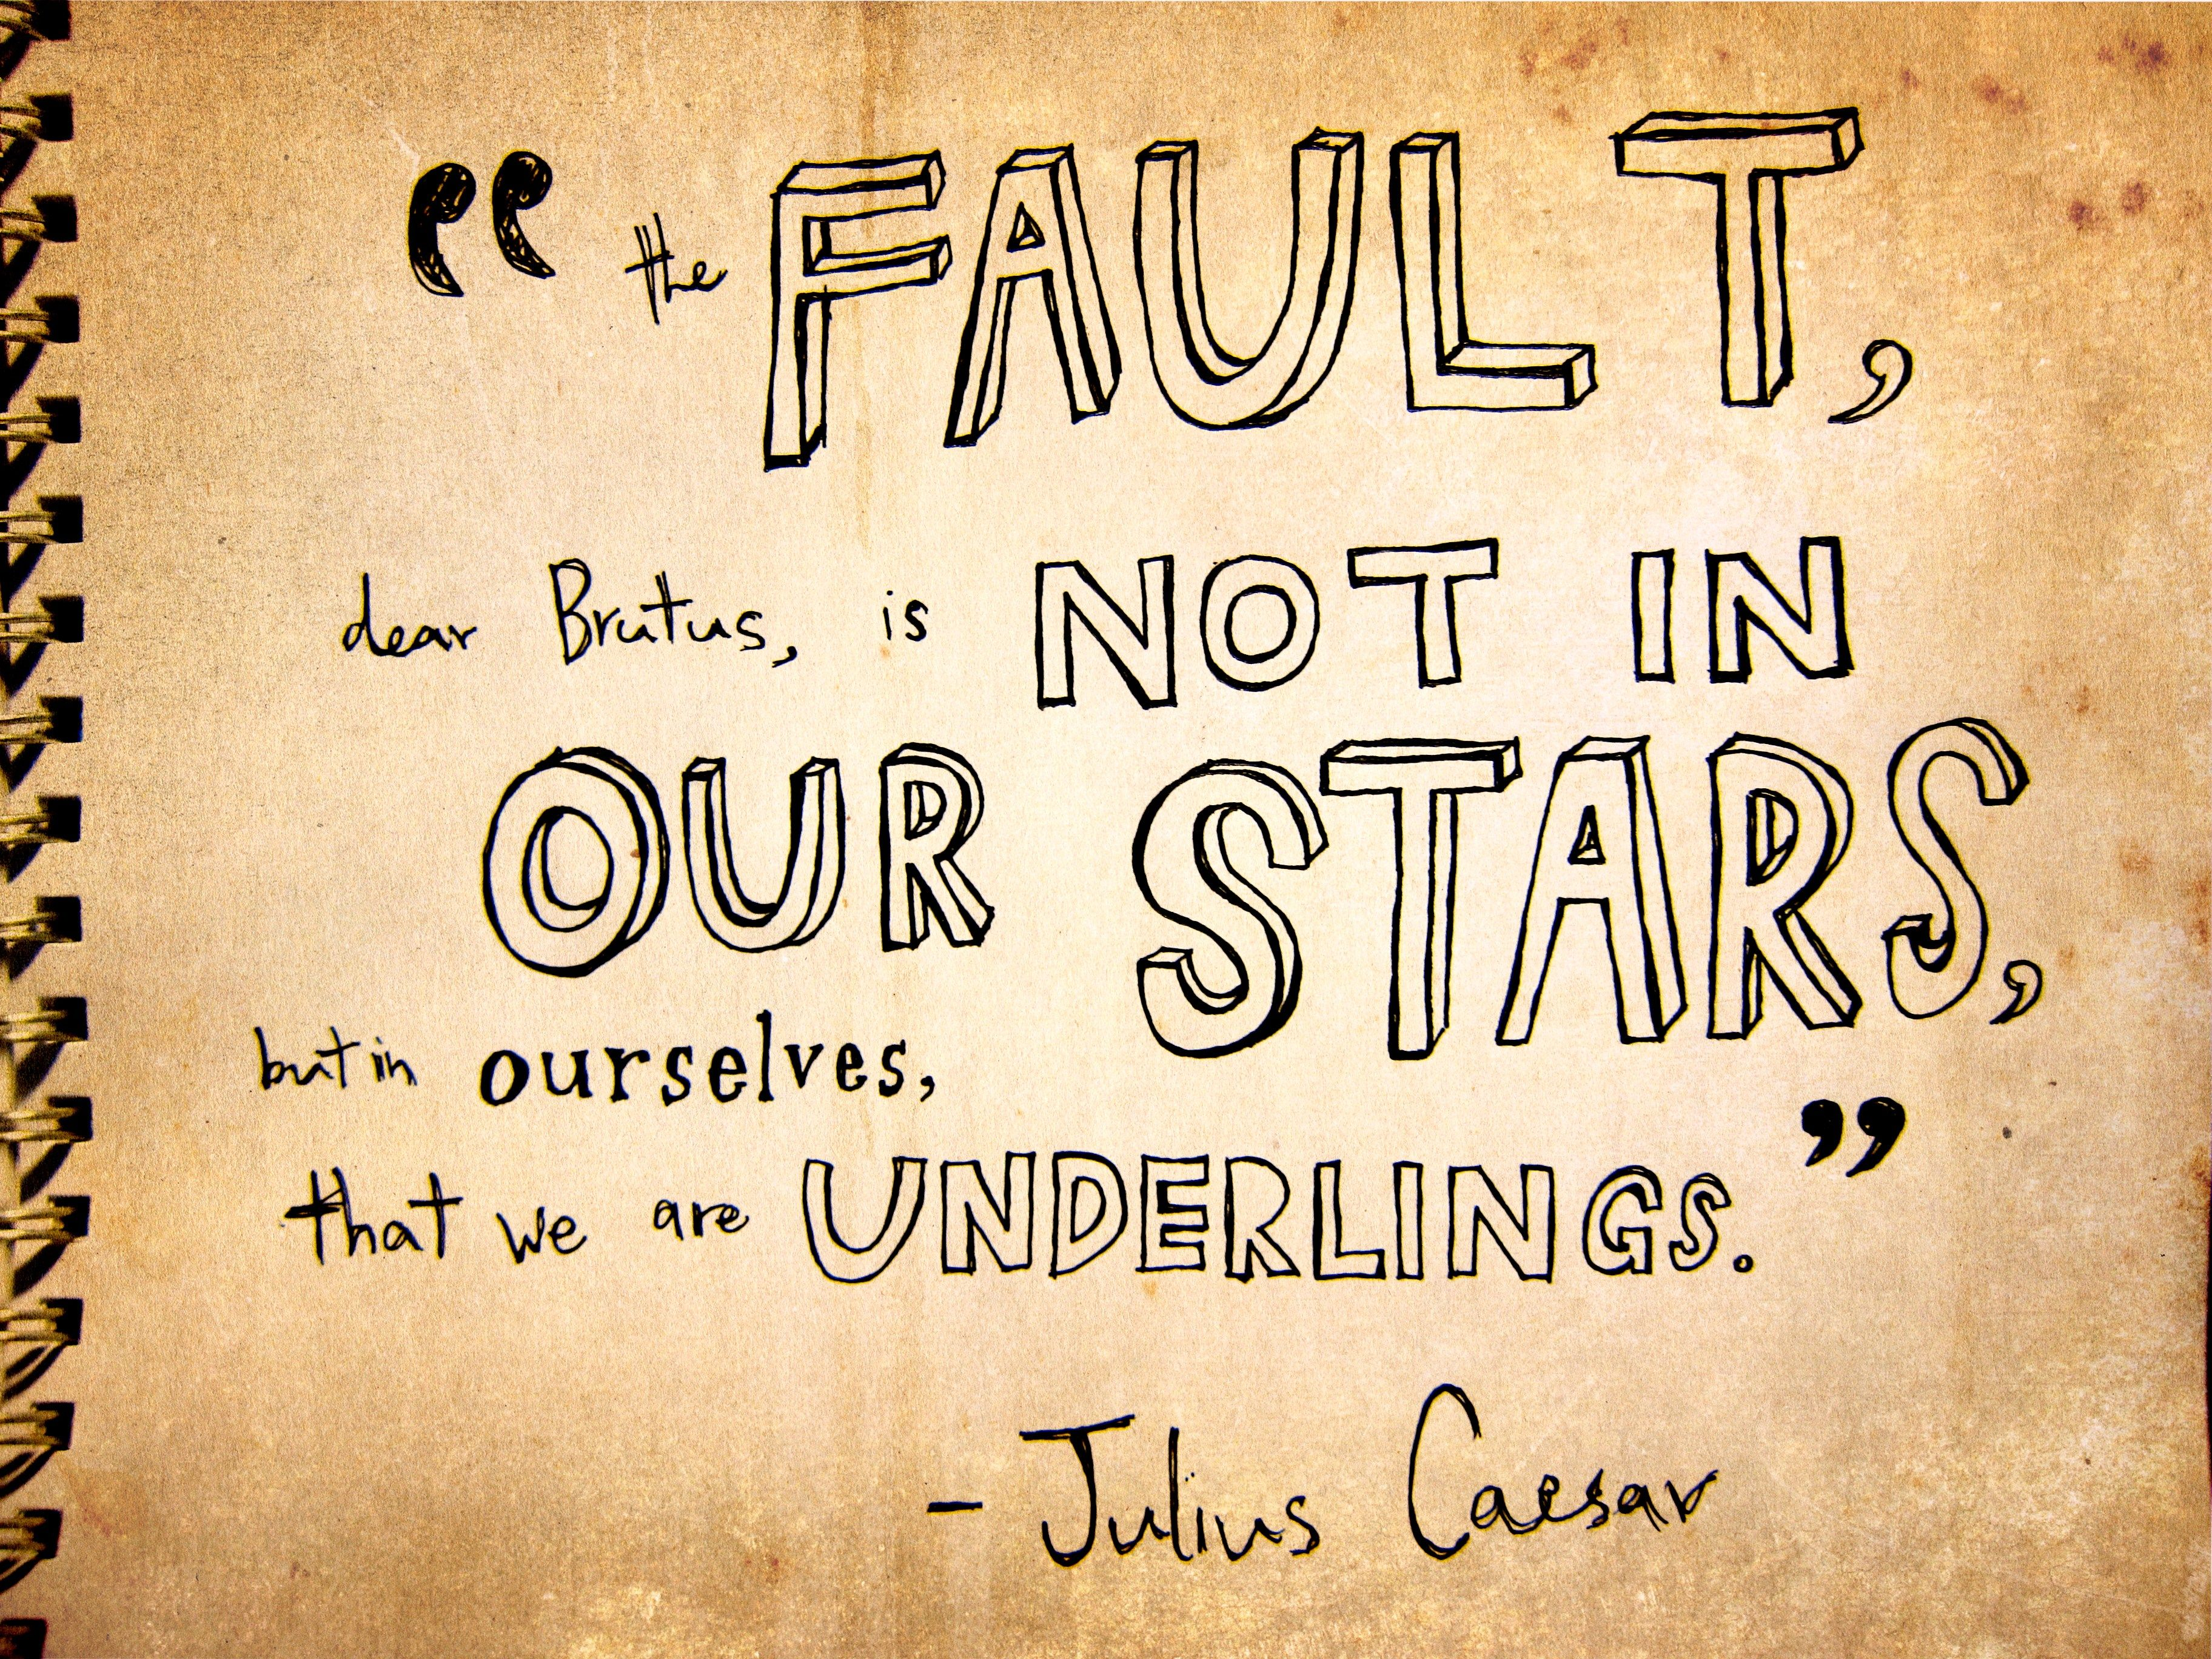 The fault, dear Brutus, is not in our stars